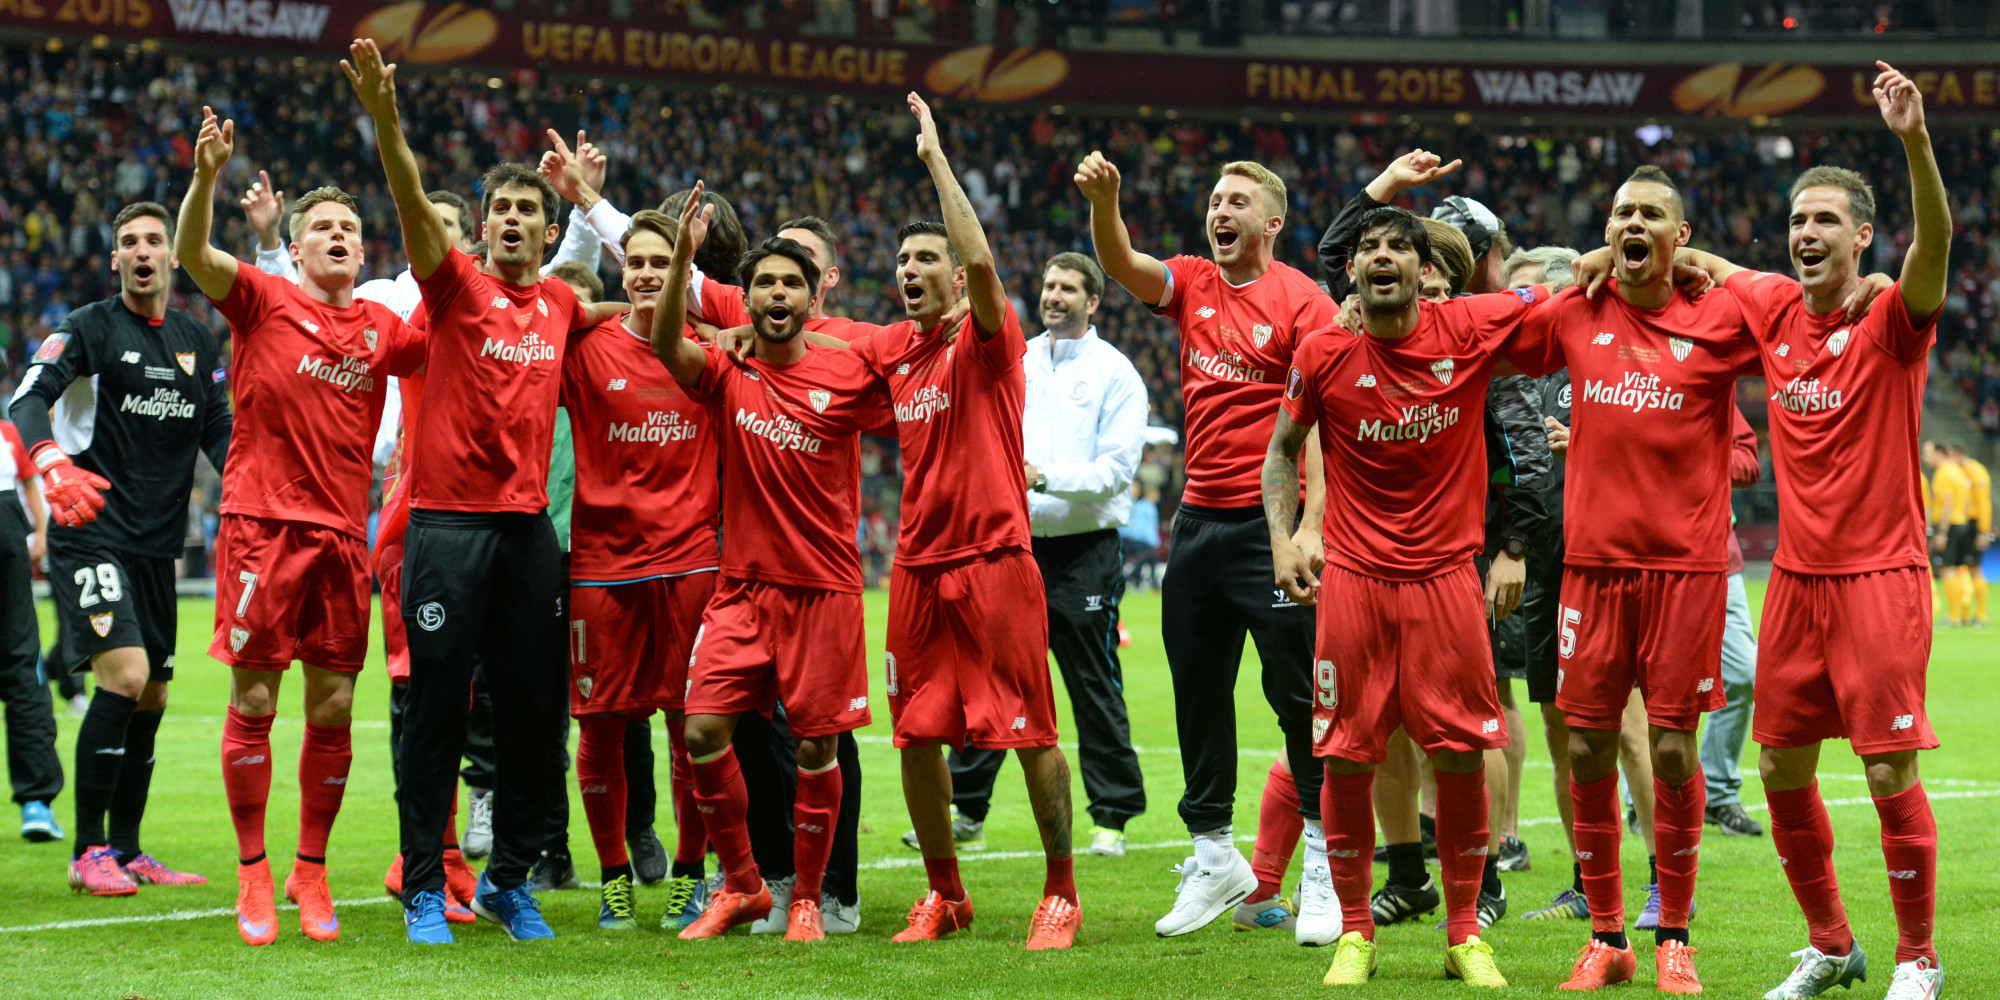 Sevilla's team celebrates after the UEFA Europa League final football match between FC Dnipro Dnipropetrovsk and Sevilla FC at the Narodowy stadium in Warsaw, Poland on May 27, 2015. Sevilla FC won 2-3.     AFP PHOTO / PIOTR HAWALEJ